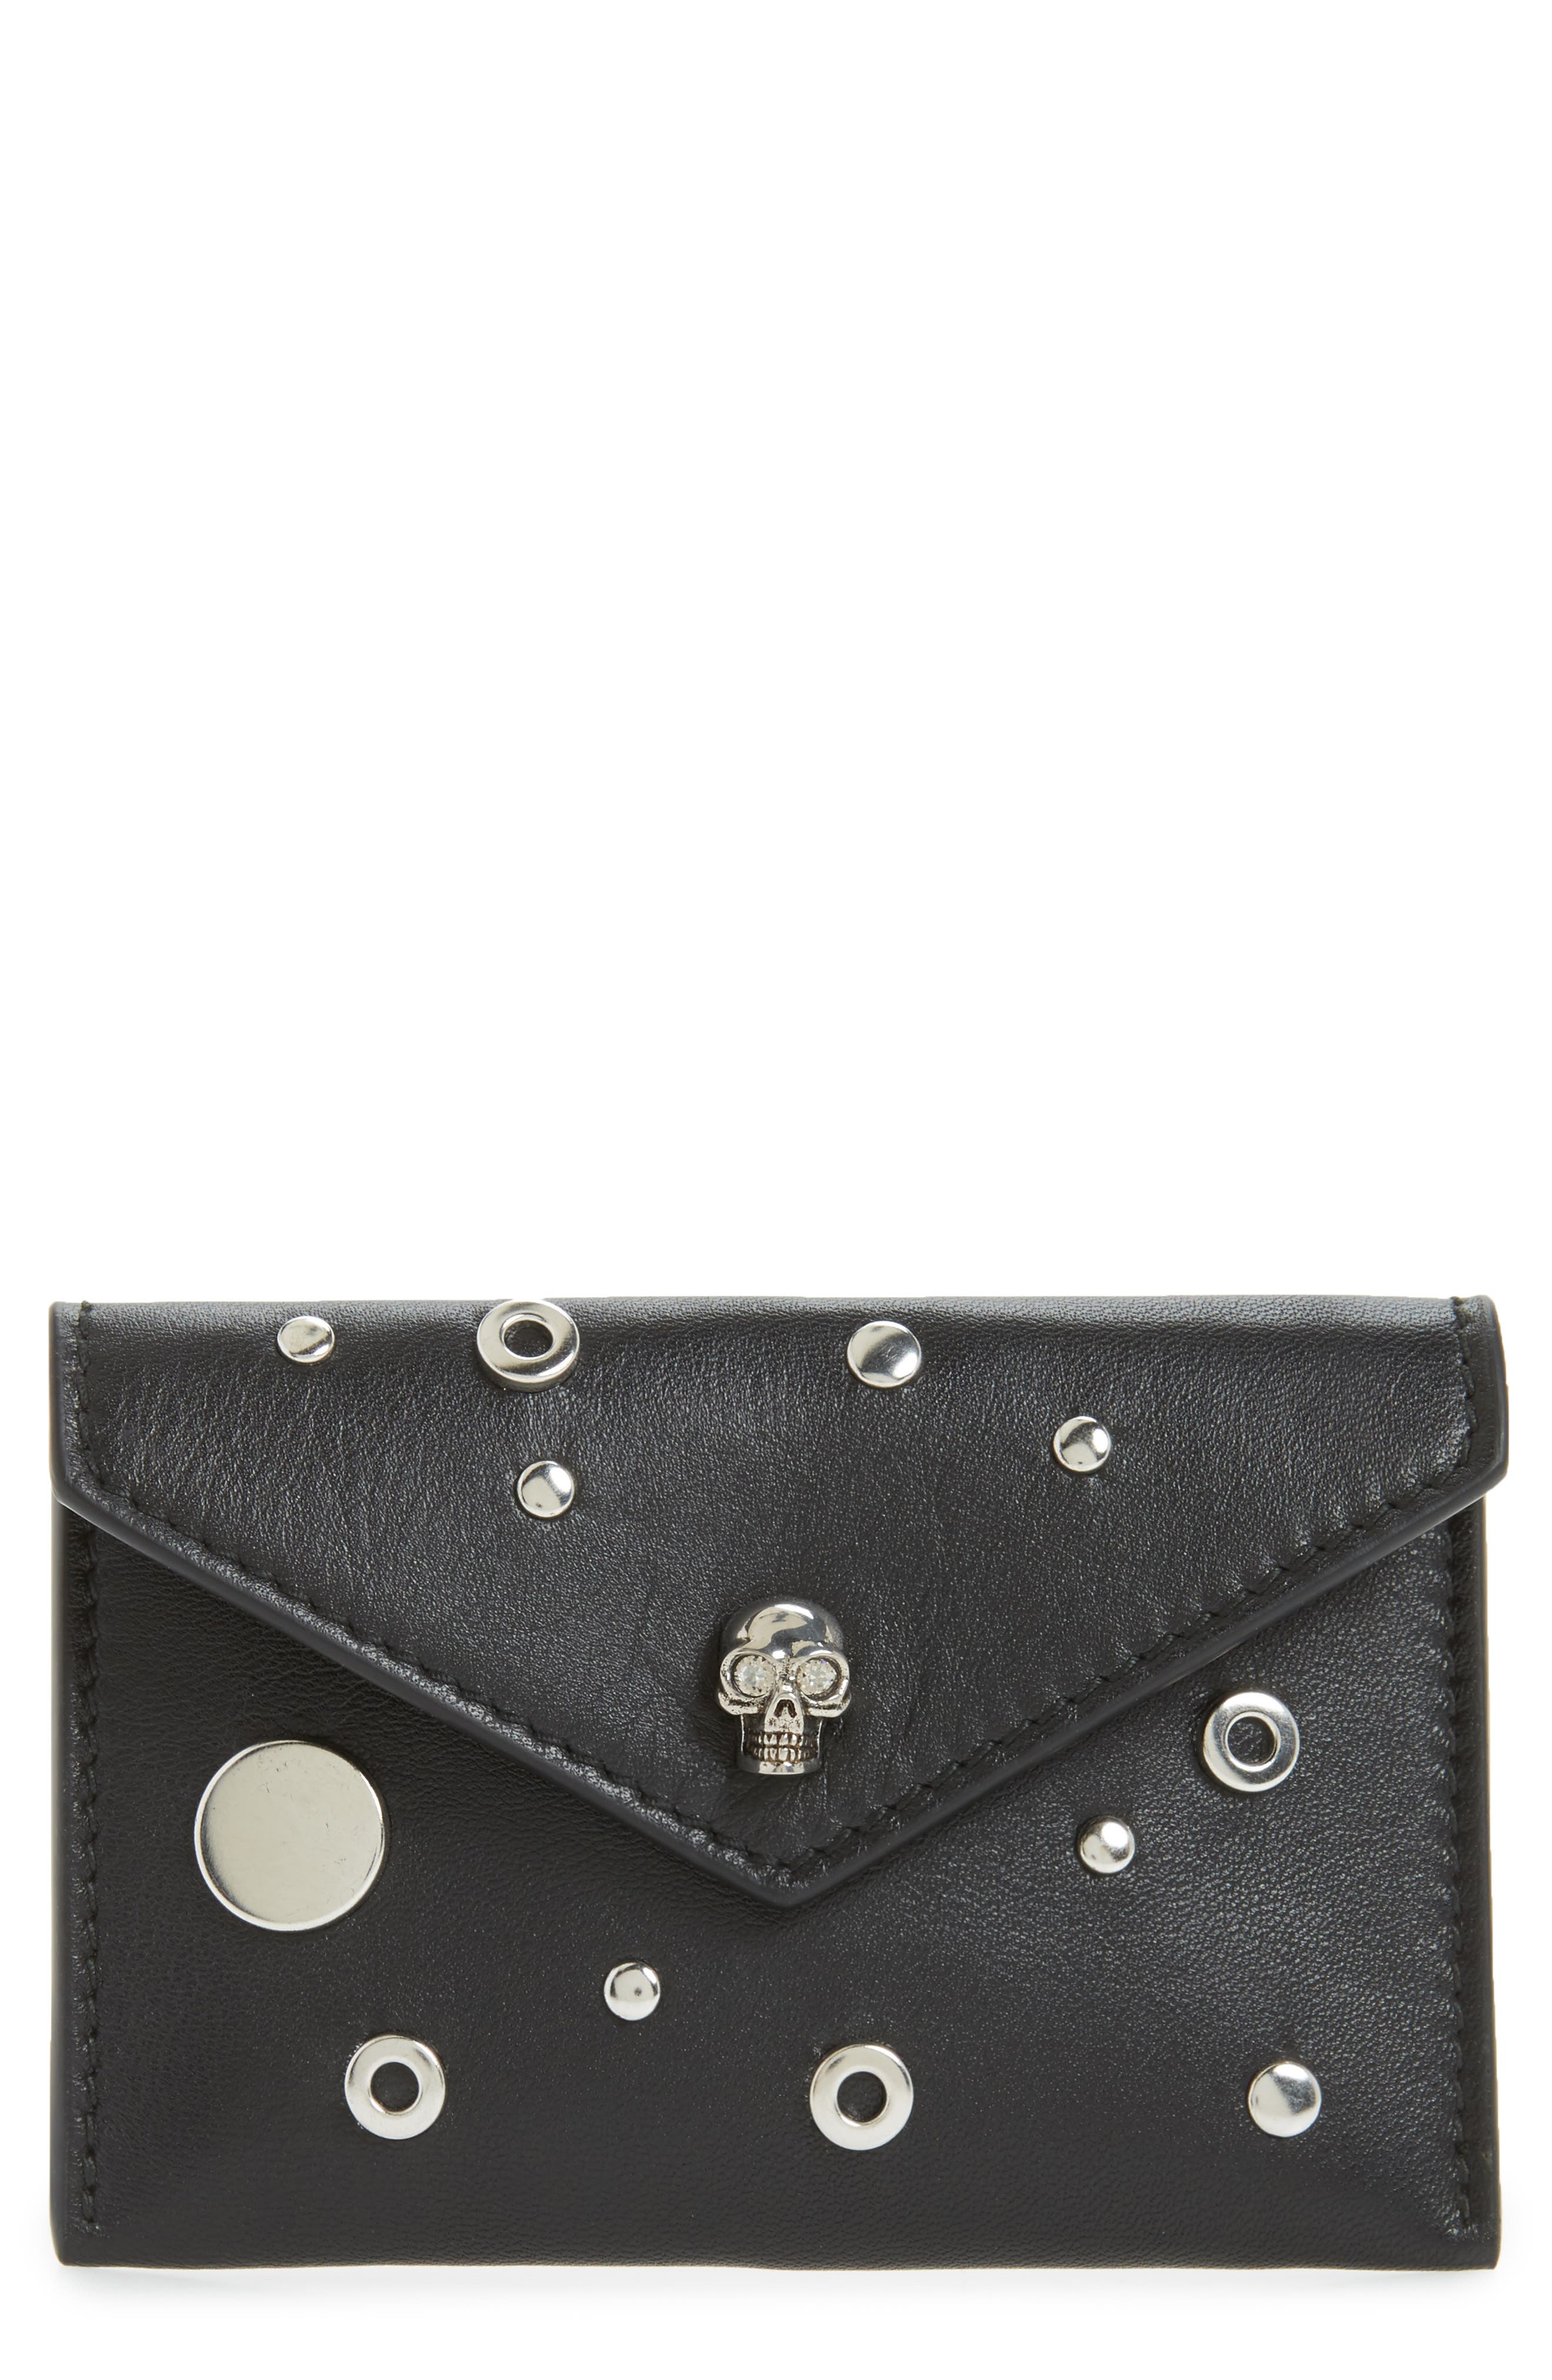 Alexander McQueen Calfskin Leather Envelope Card Holder